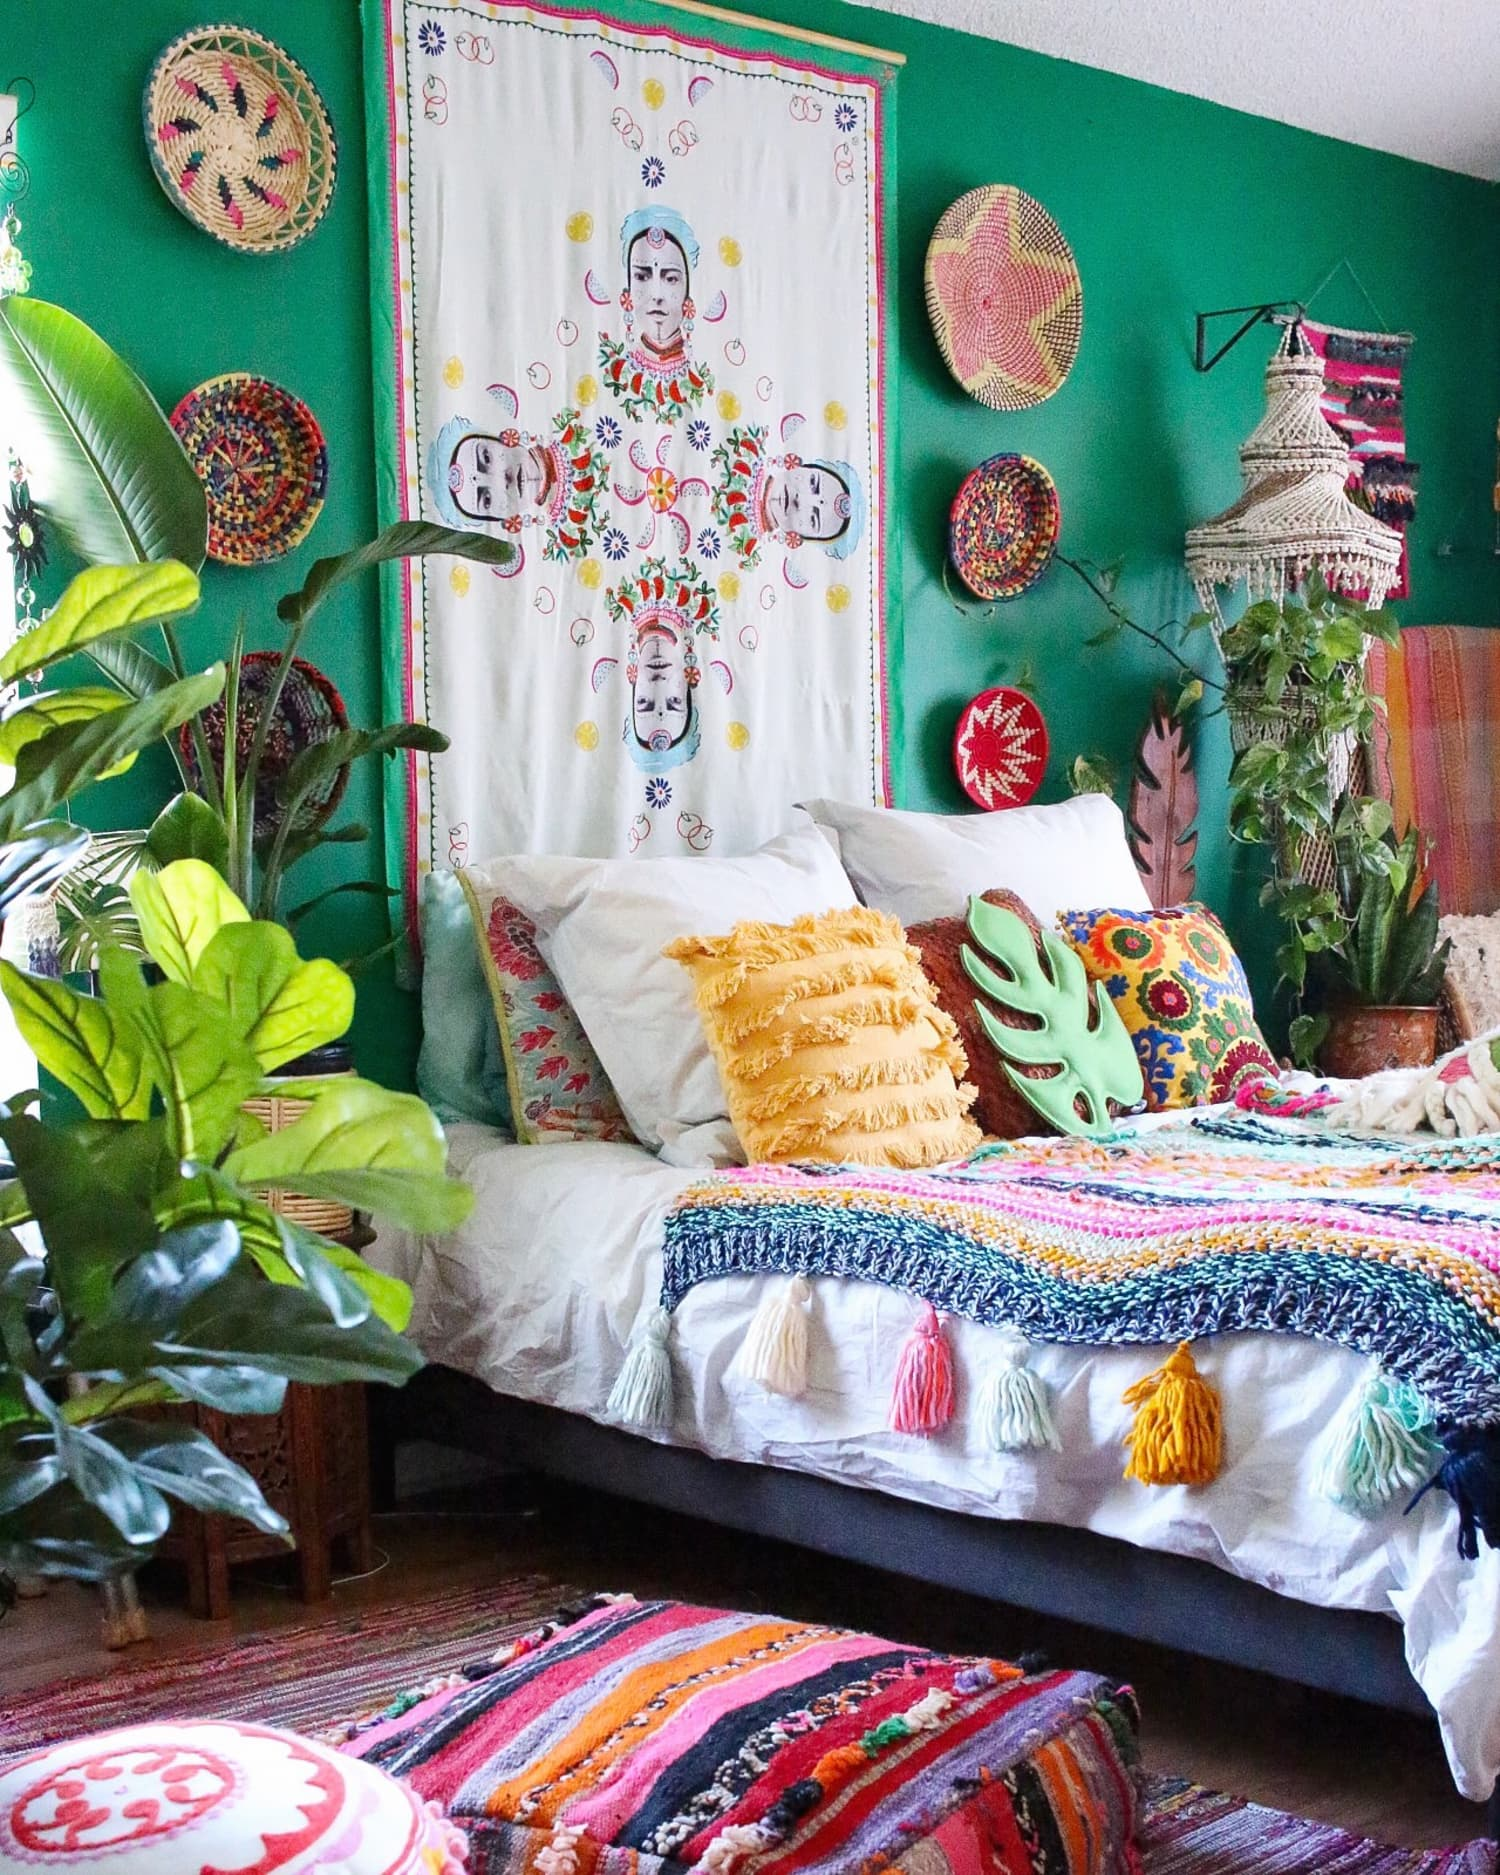 Bohemian Bedroom Ideas: Bohemian Design Trends - Bedroom Decor Ideas